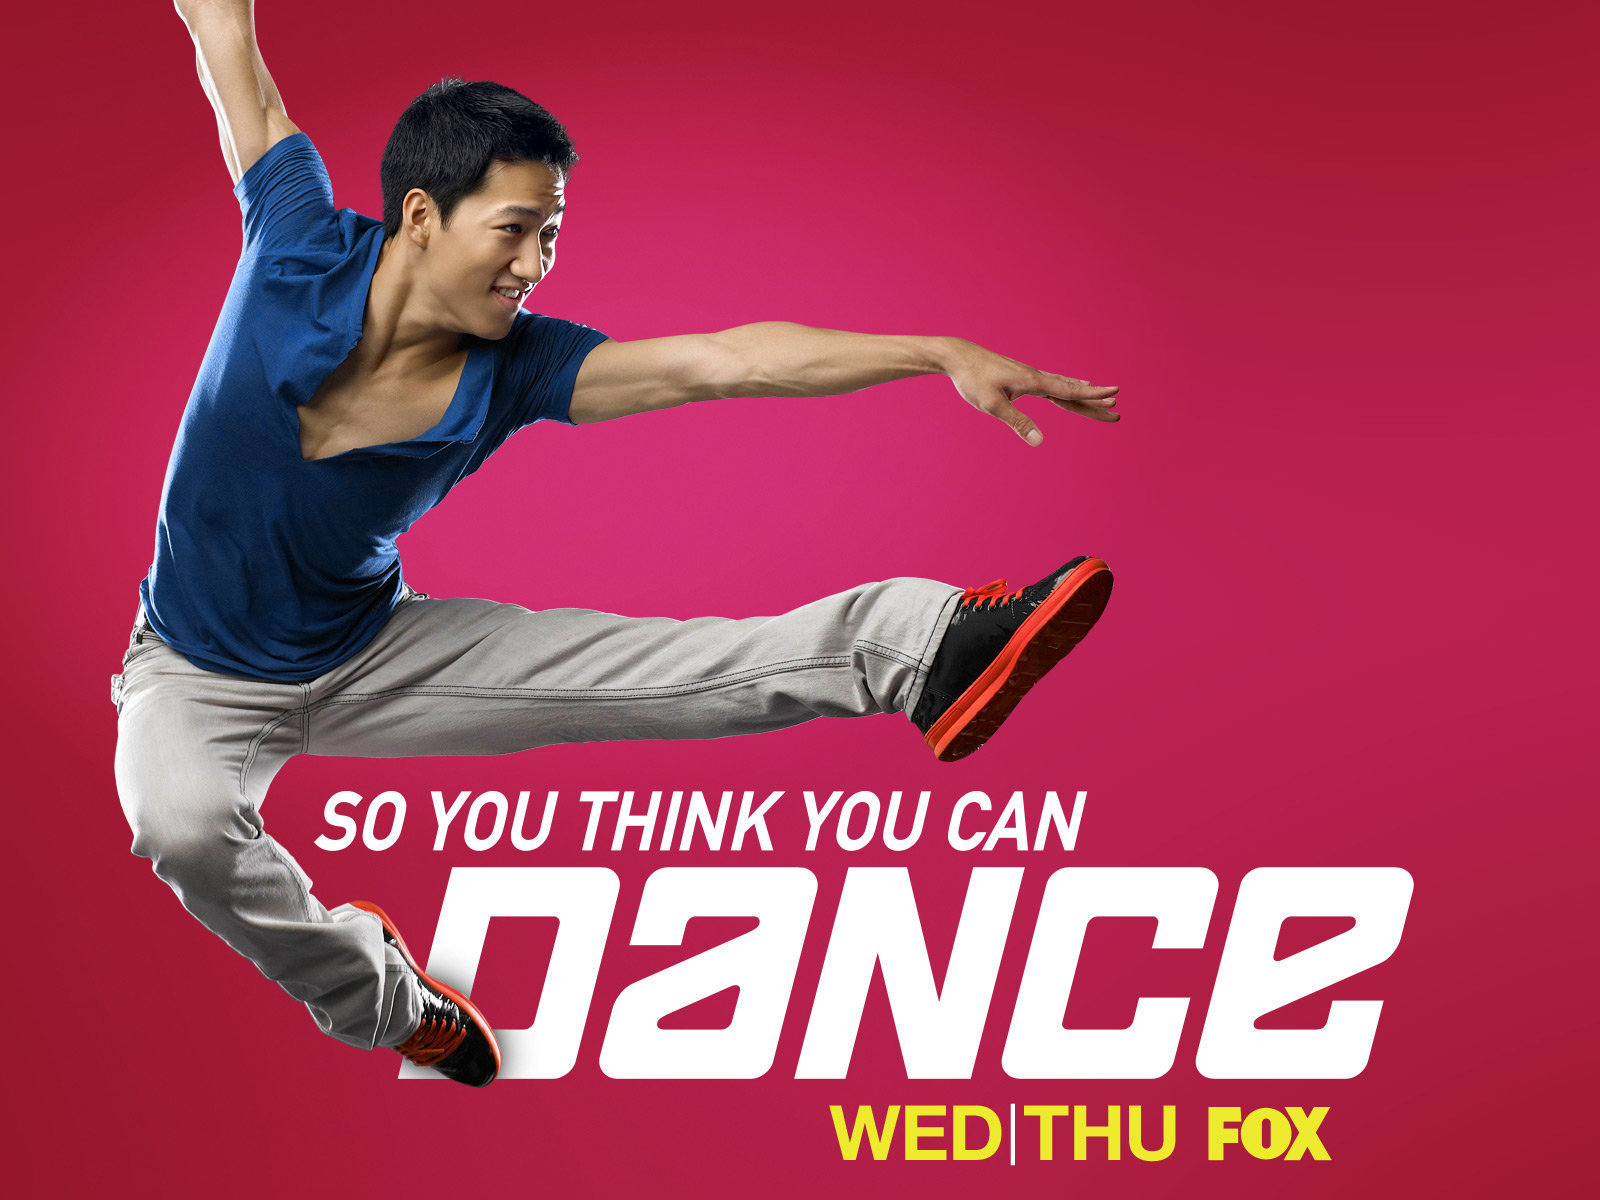 http://images4.fanpop.com/image/photos/14900000/SYTYCD-7-so-you-think-you-can-dance-14932142-1600-1200.jpg